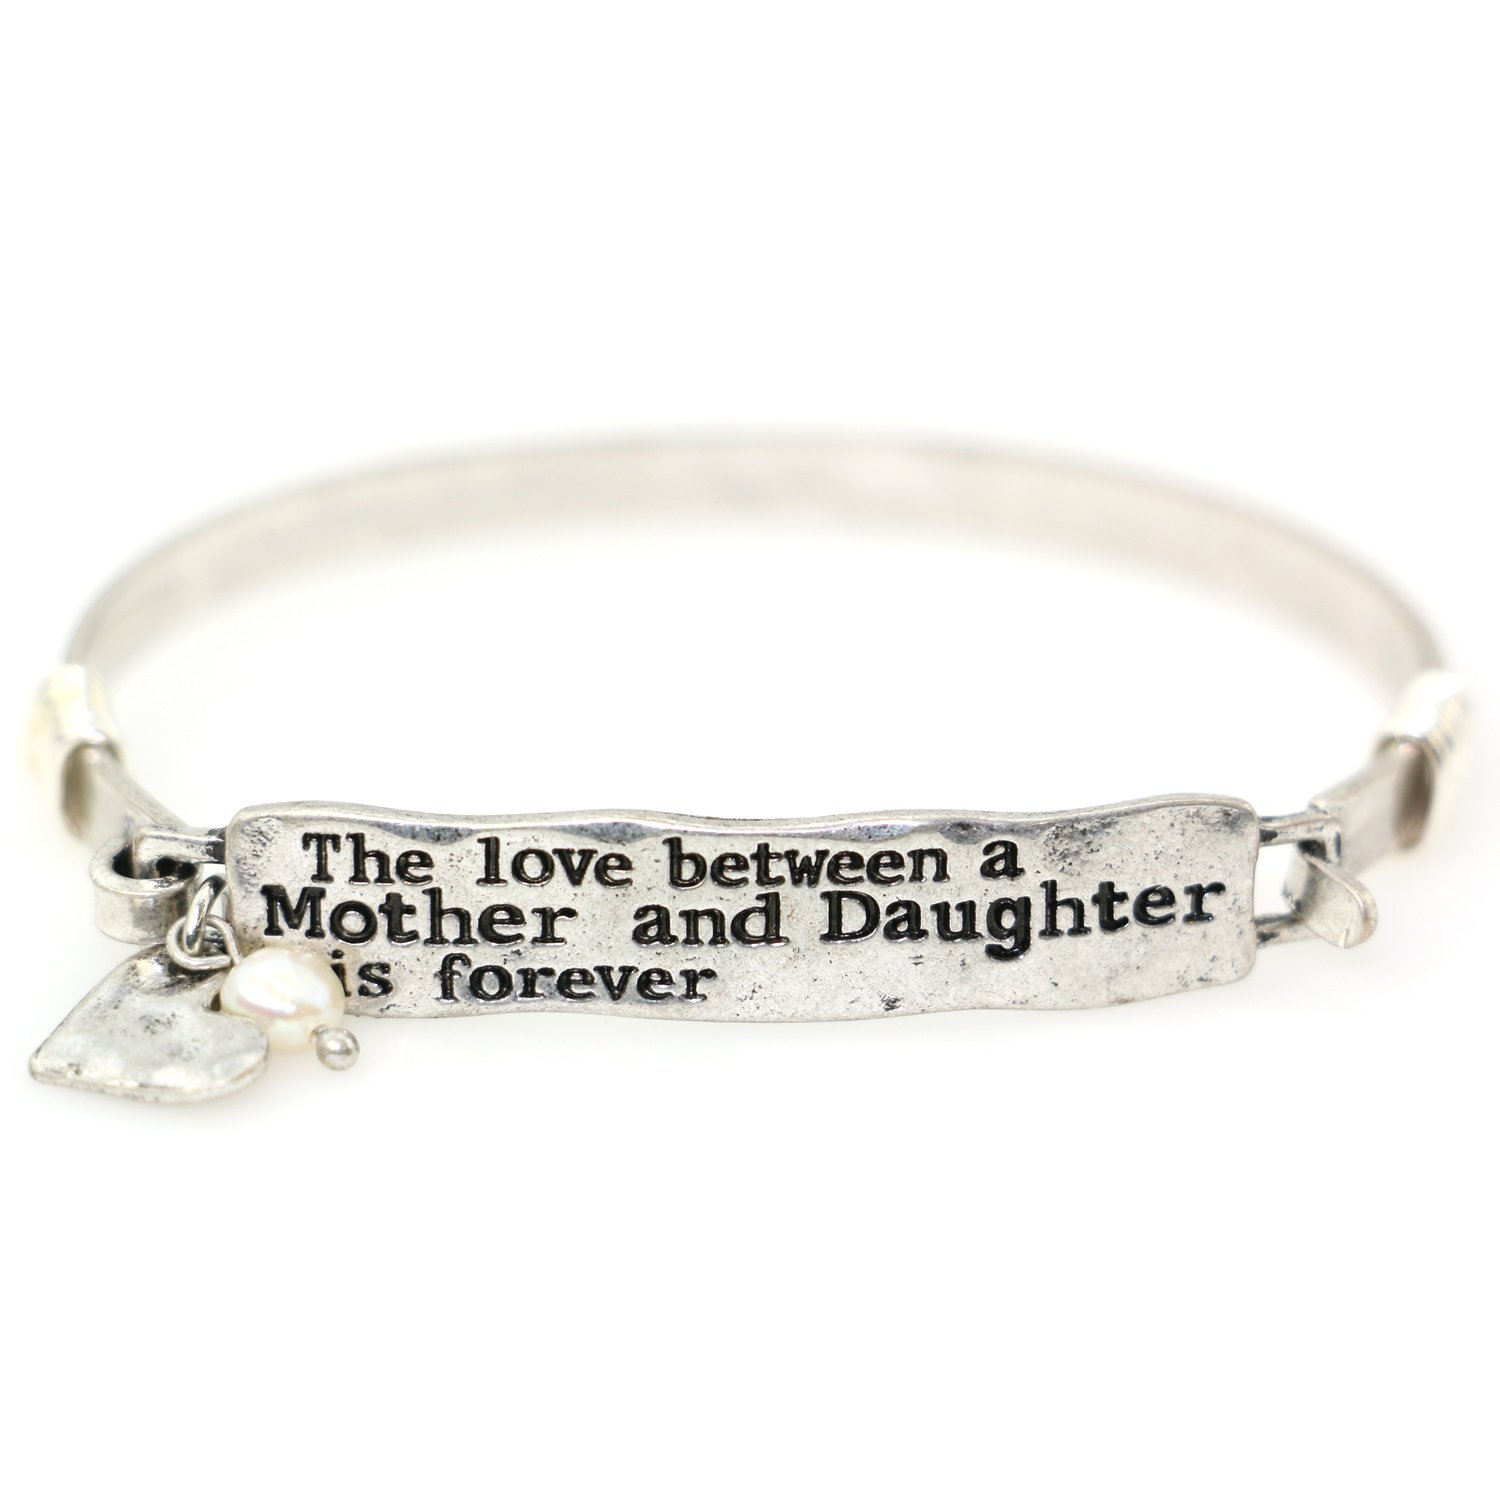 The Love Between A Mother and Daughter is Forever Handmade Mother Daughter Bangle Bracelet with Heart Charm for Women Girl Teen Her Gift